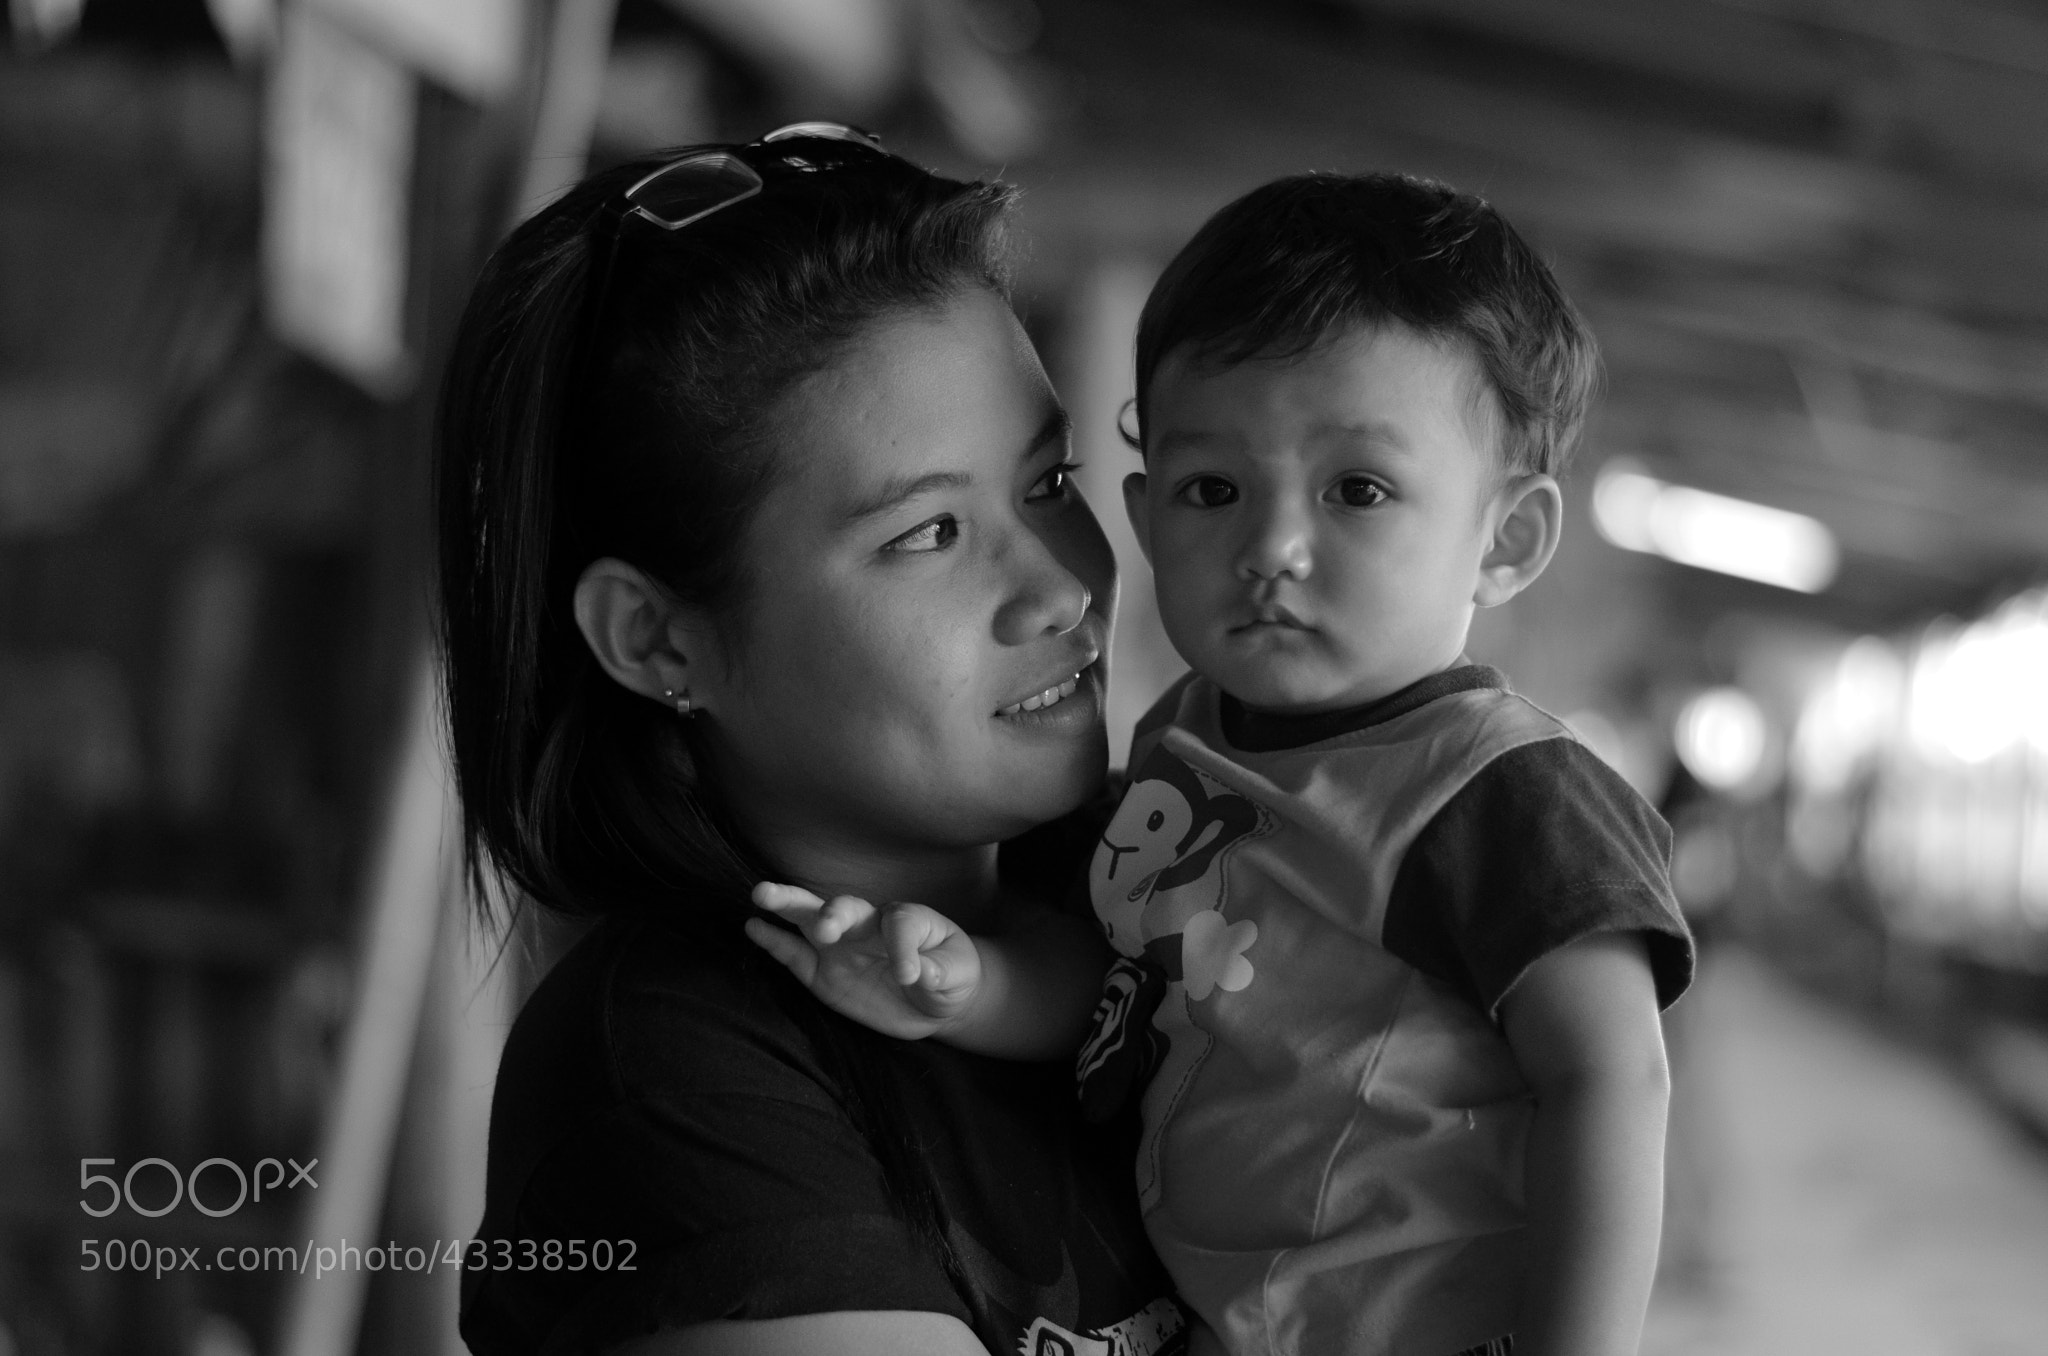 Photograph #3 Street Portrait by Charlie HOANG on 500px